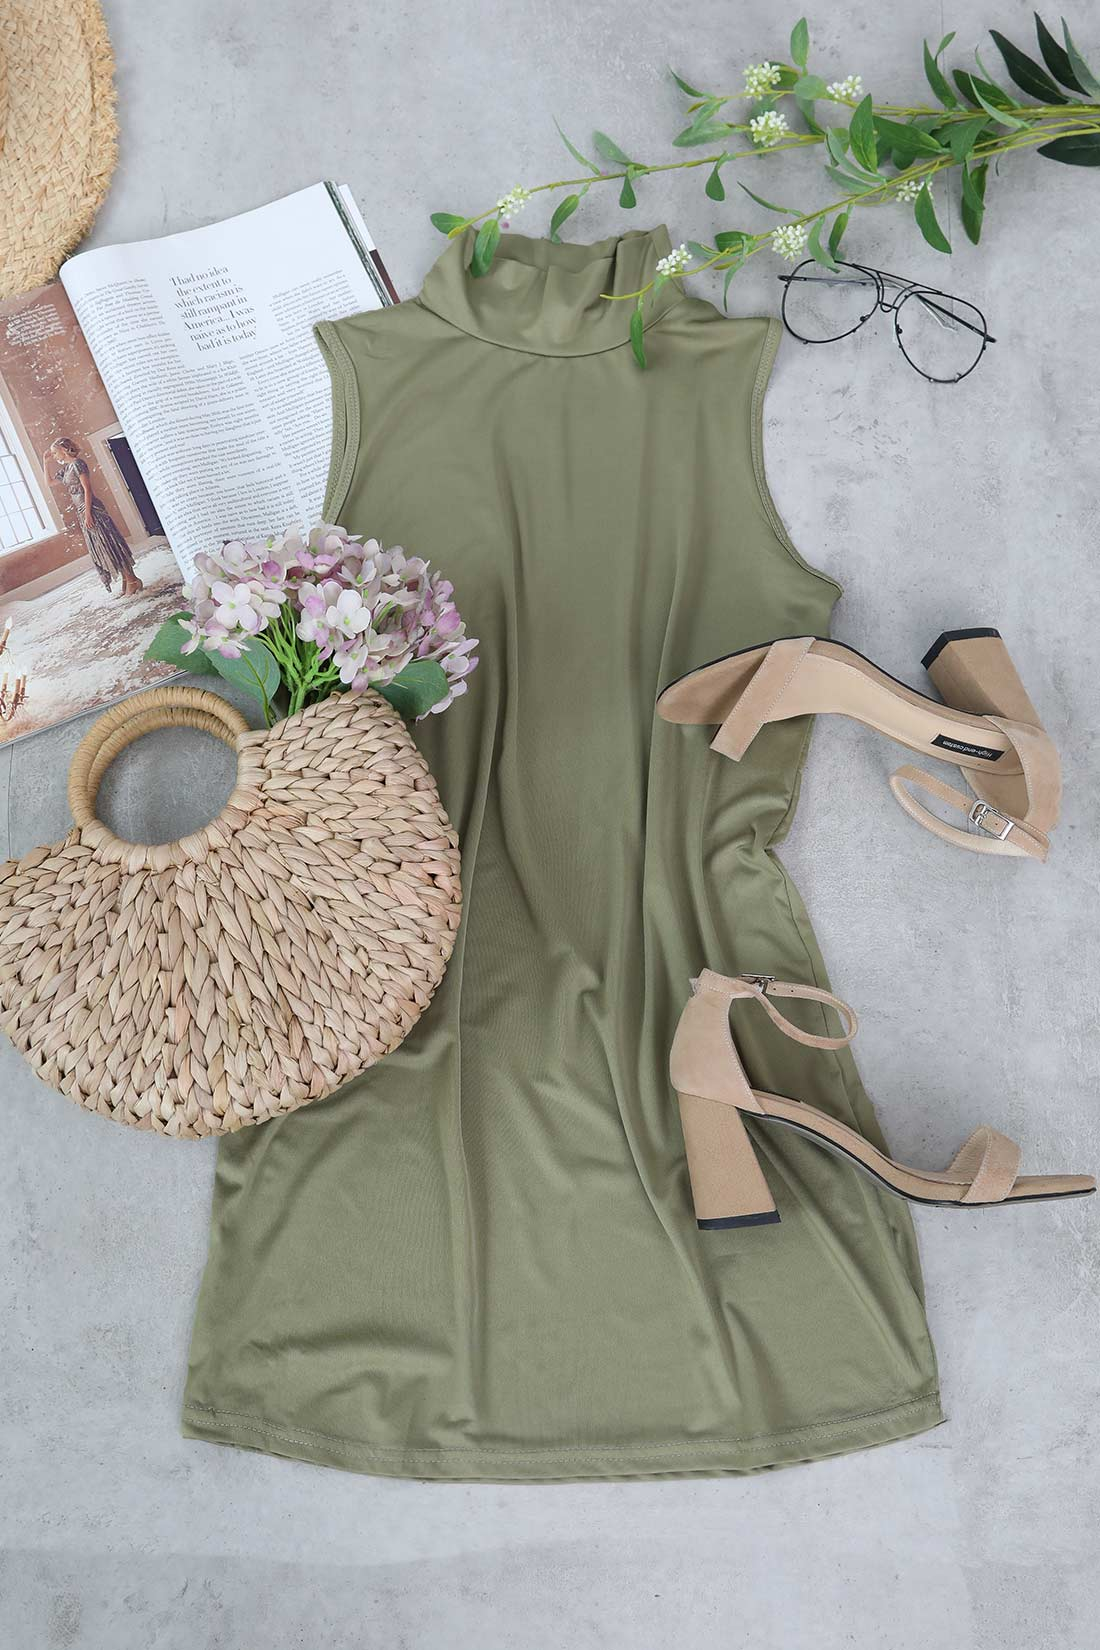 Shefn Solid Color Sleeveless Turtleneck Mini Dress